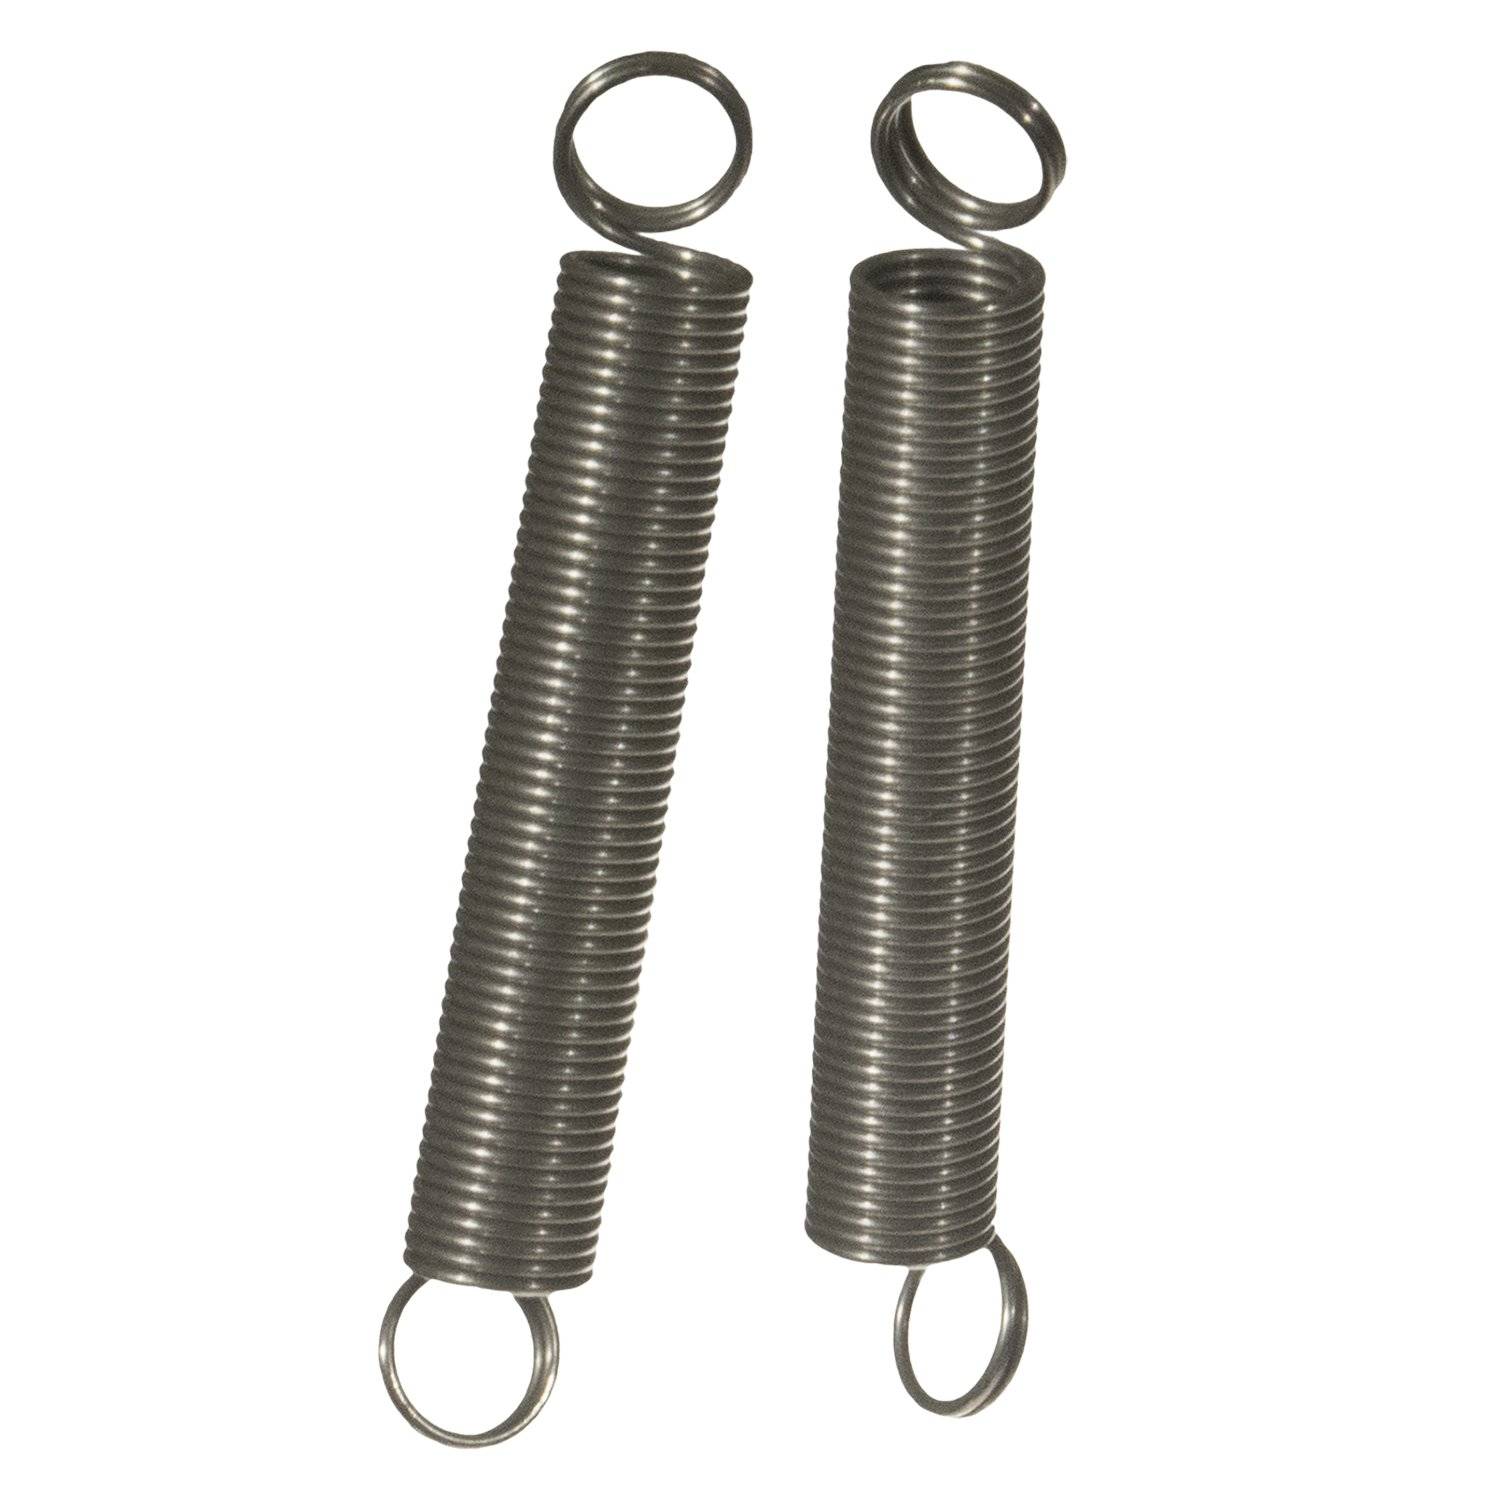 Heatshield Products (352002) Thermal Spring